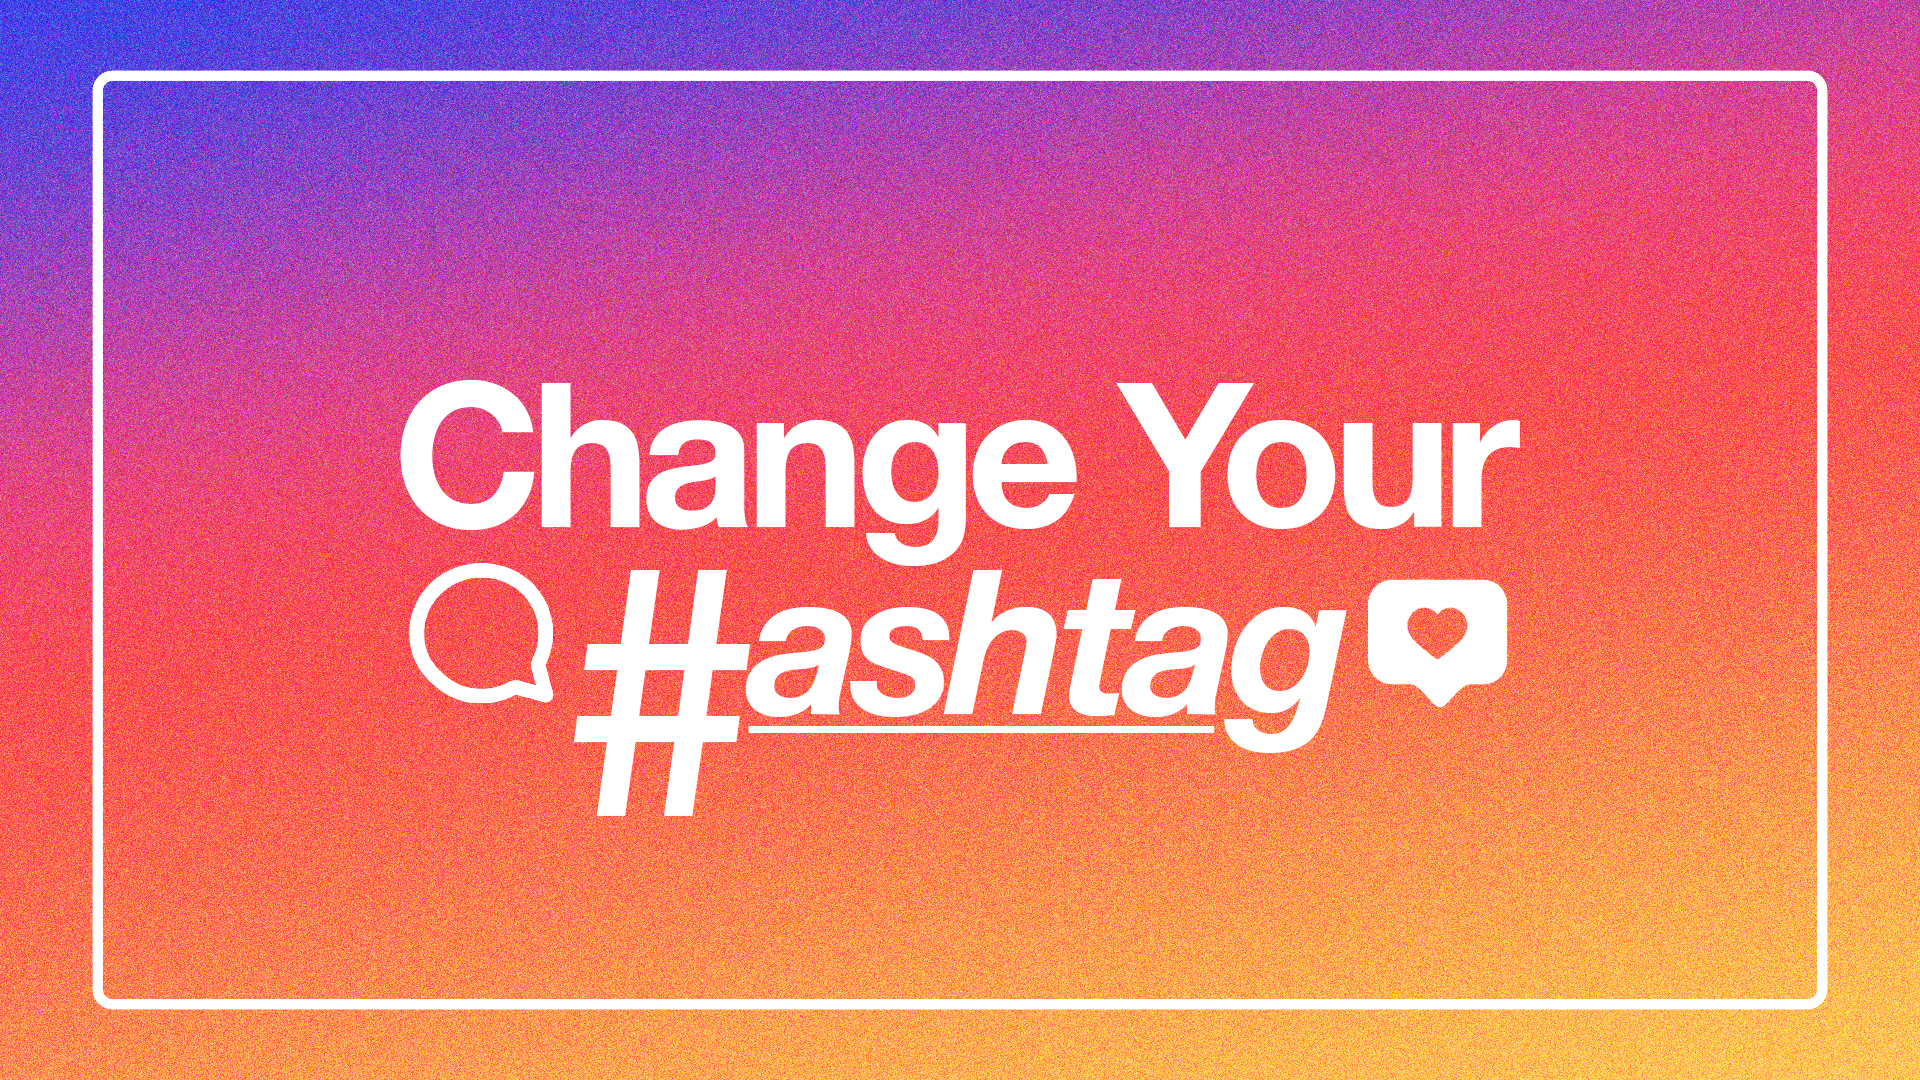 Change Your Hashtag, Rock Youth, Rock Church AVL, Asheville, NC